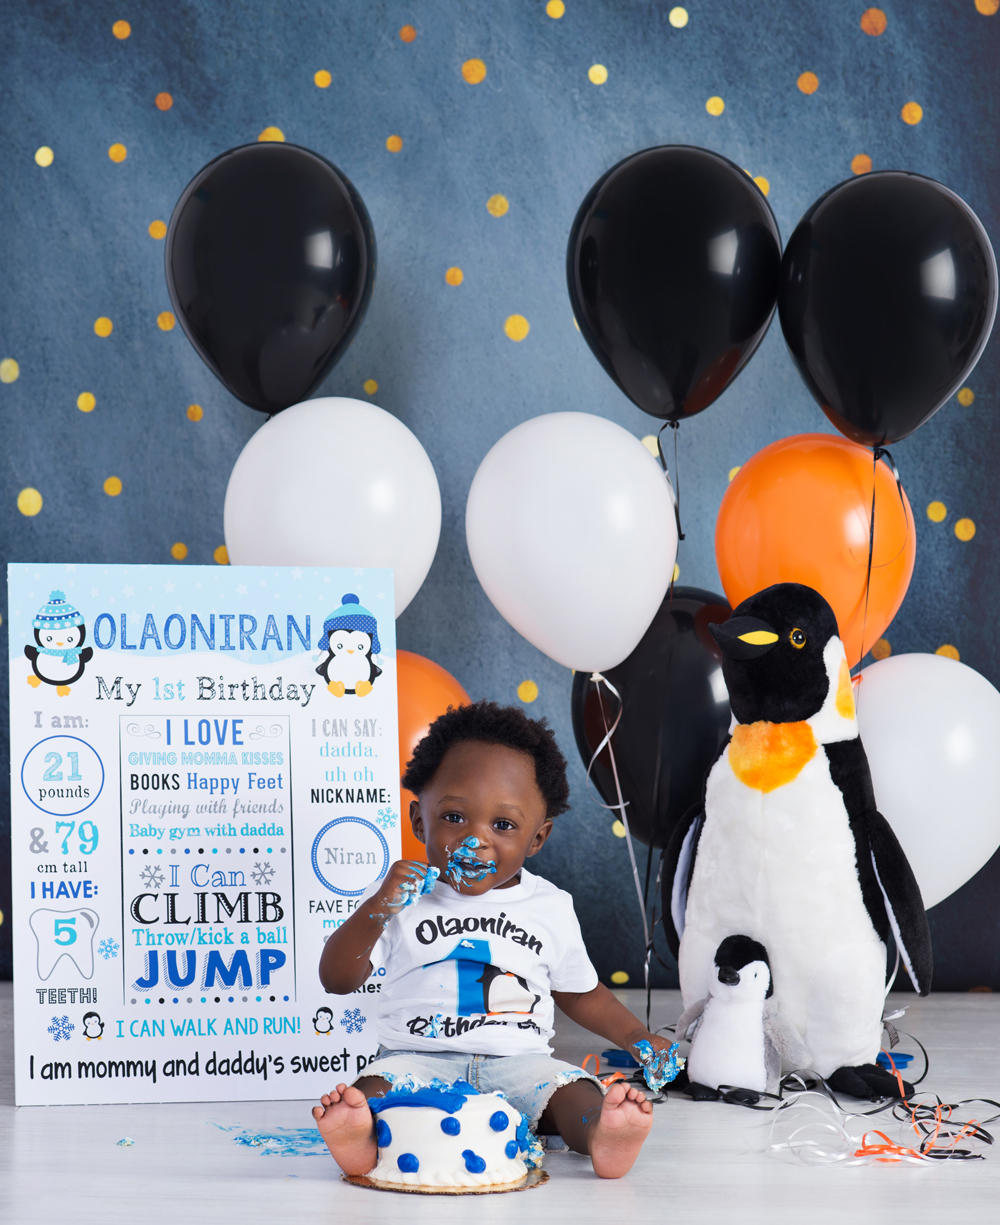 Happy Feet Birthday Party Decorations  from photosoncloud9.com